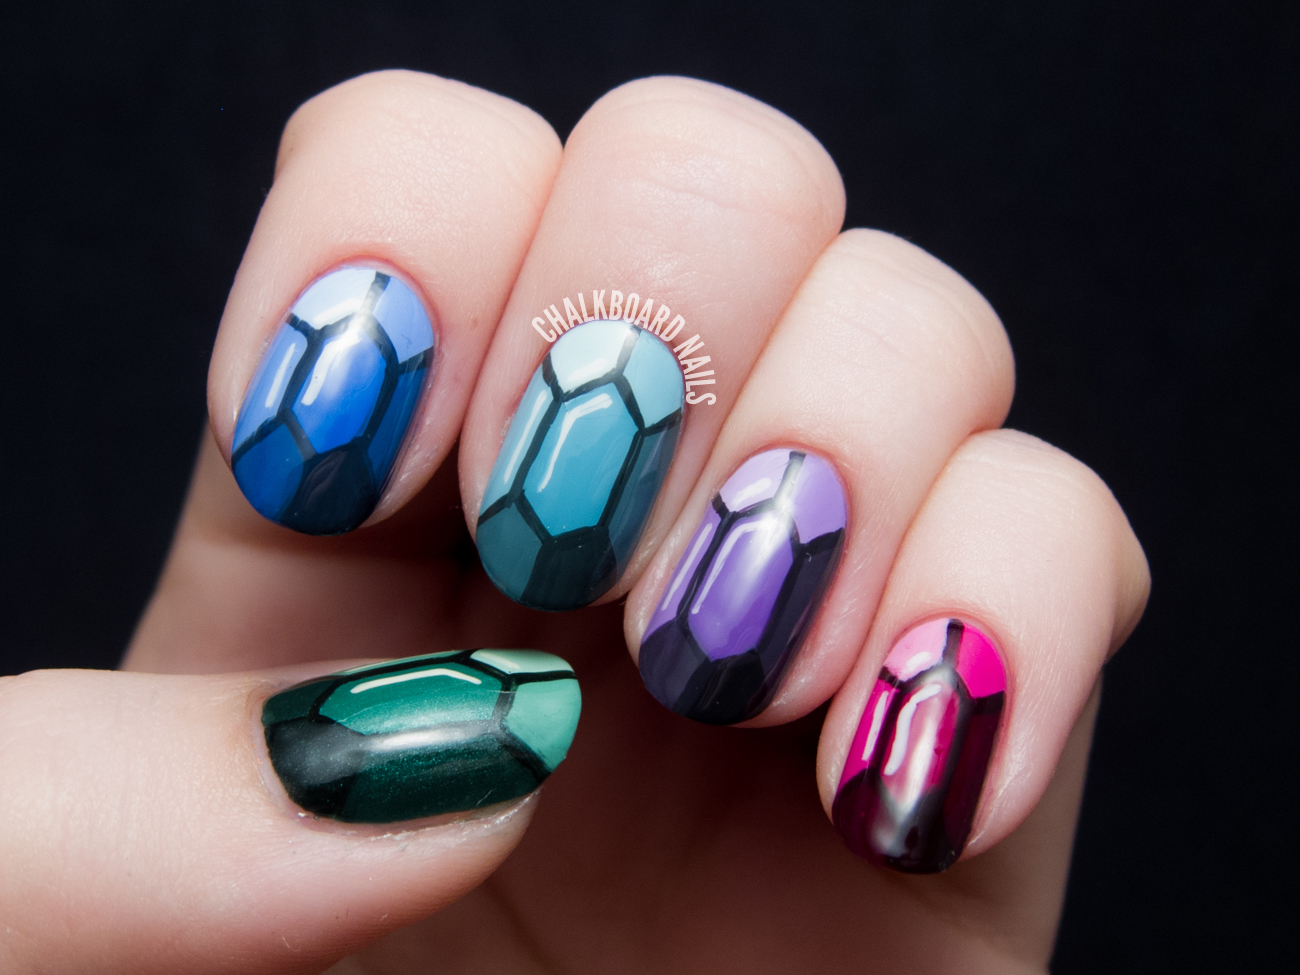 Precious Gems Nail Art Tutorial by @chalkboardnails